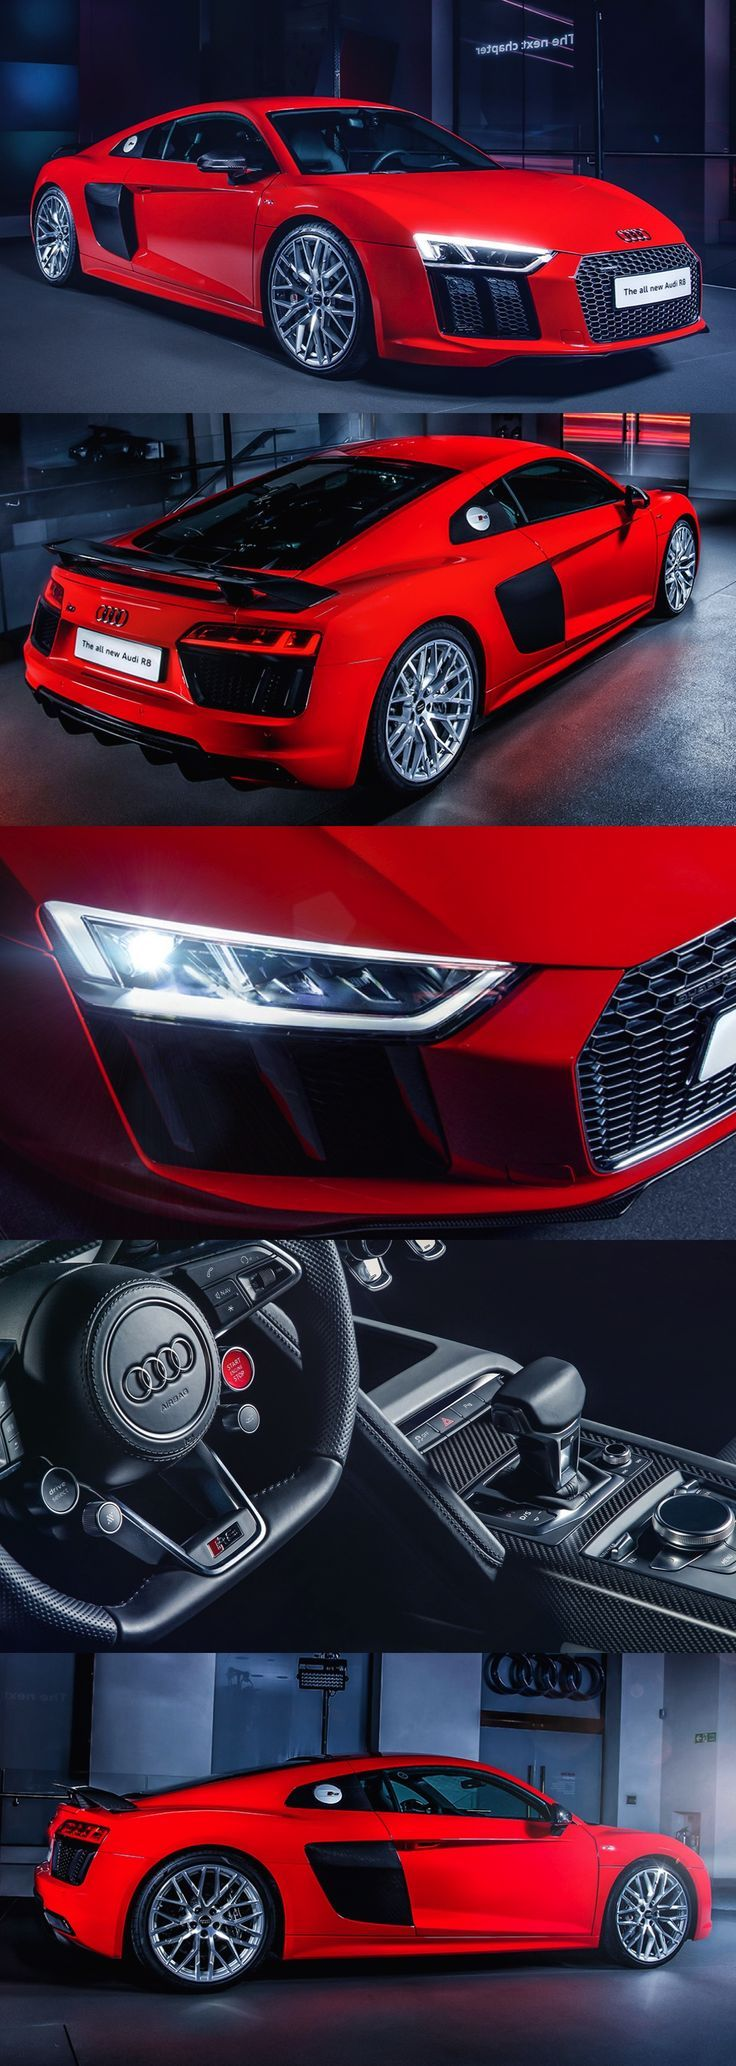 Cool Audi 2017: Audi R8 V10 plus - 0-62 mph in 3.2 seconds, 0-124mph in 9.9 seconds, top speed 2...  Nice Rides